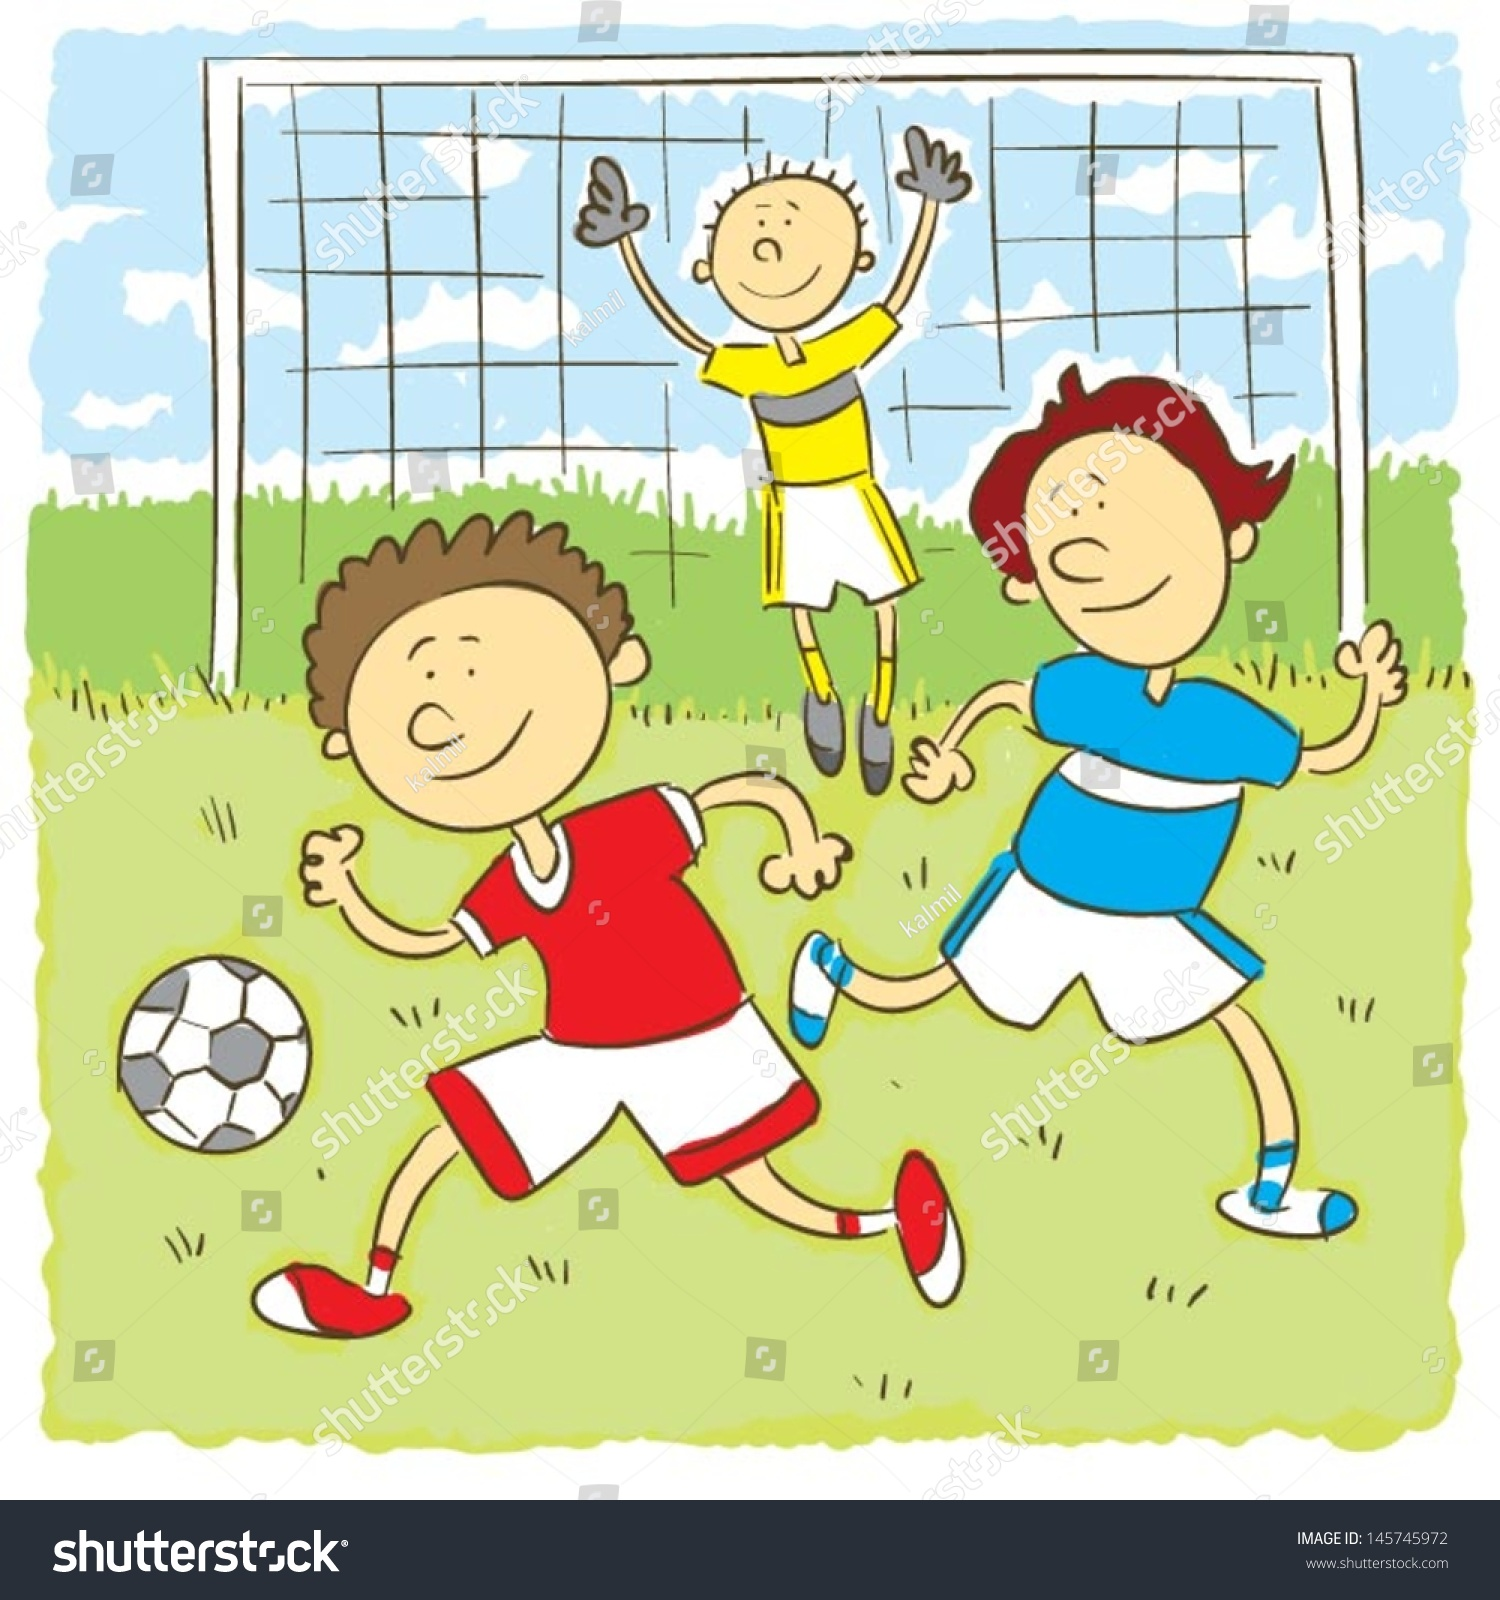 kids playing soccerchilds hand drawing vector illustration on happy child playing football